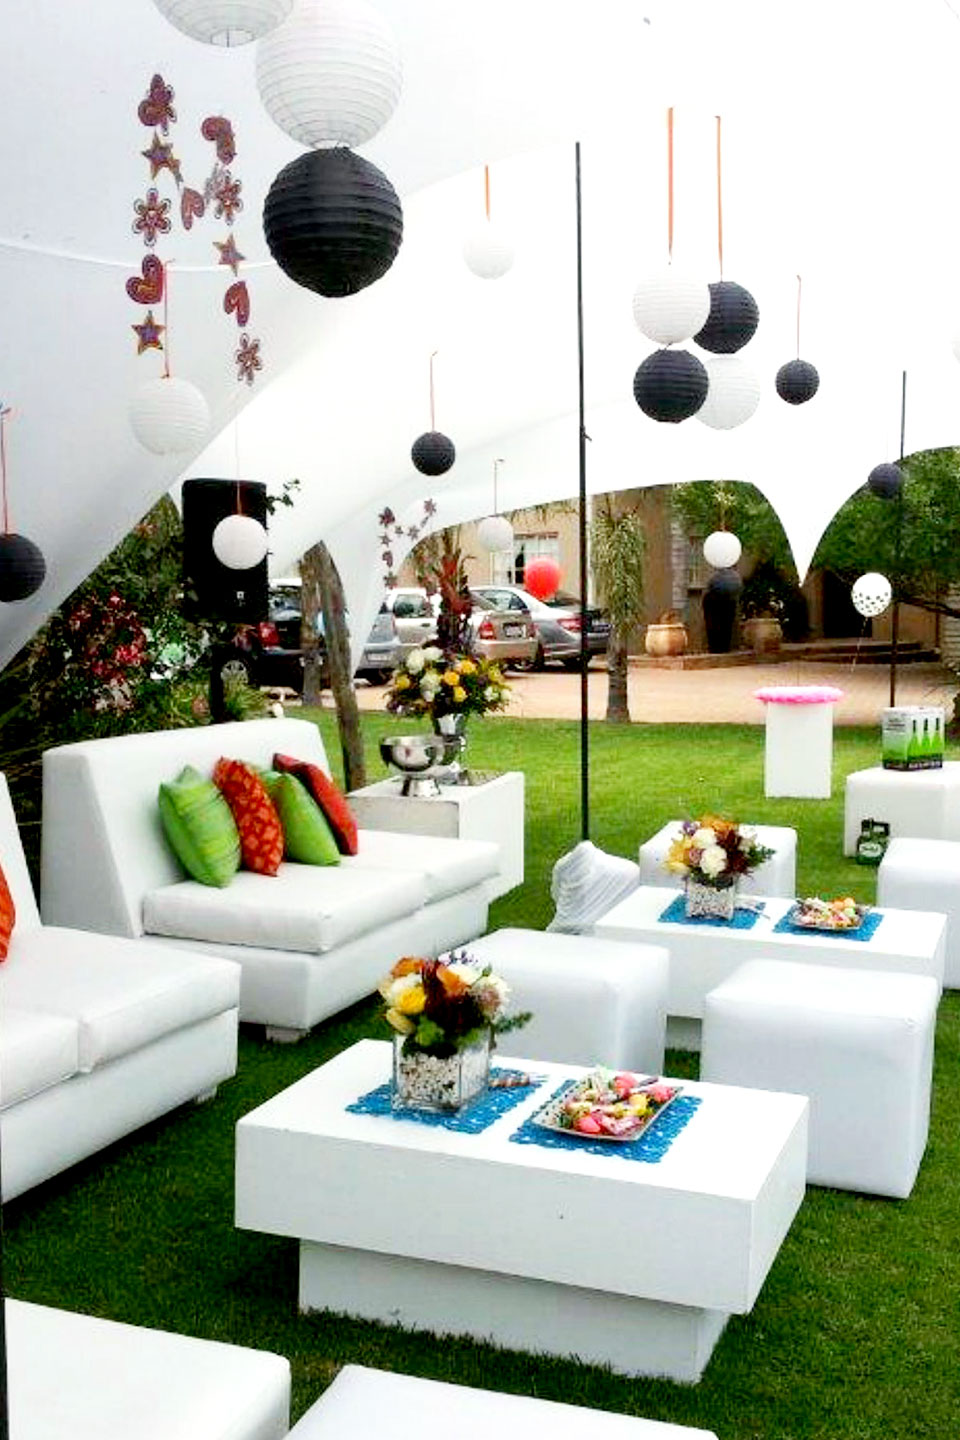 Decor4u corpate and wedding events cape town and for Decor 4 events